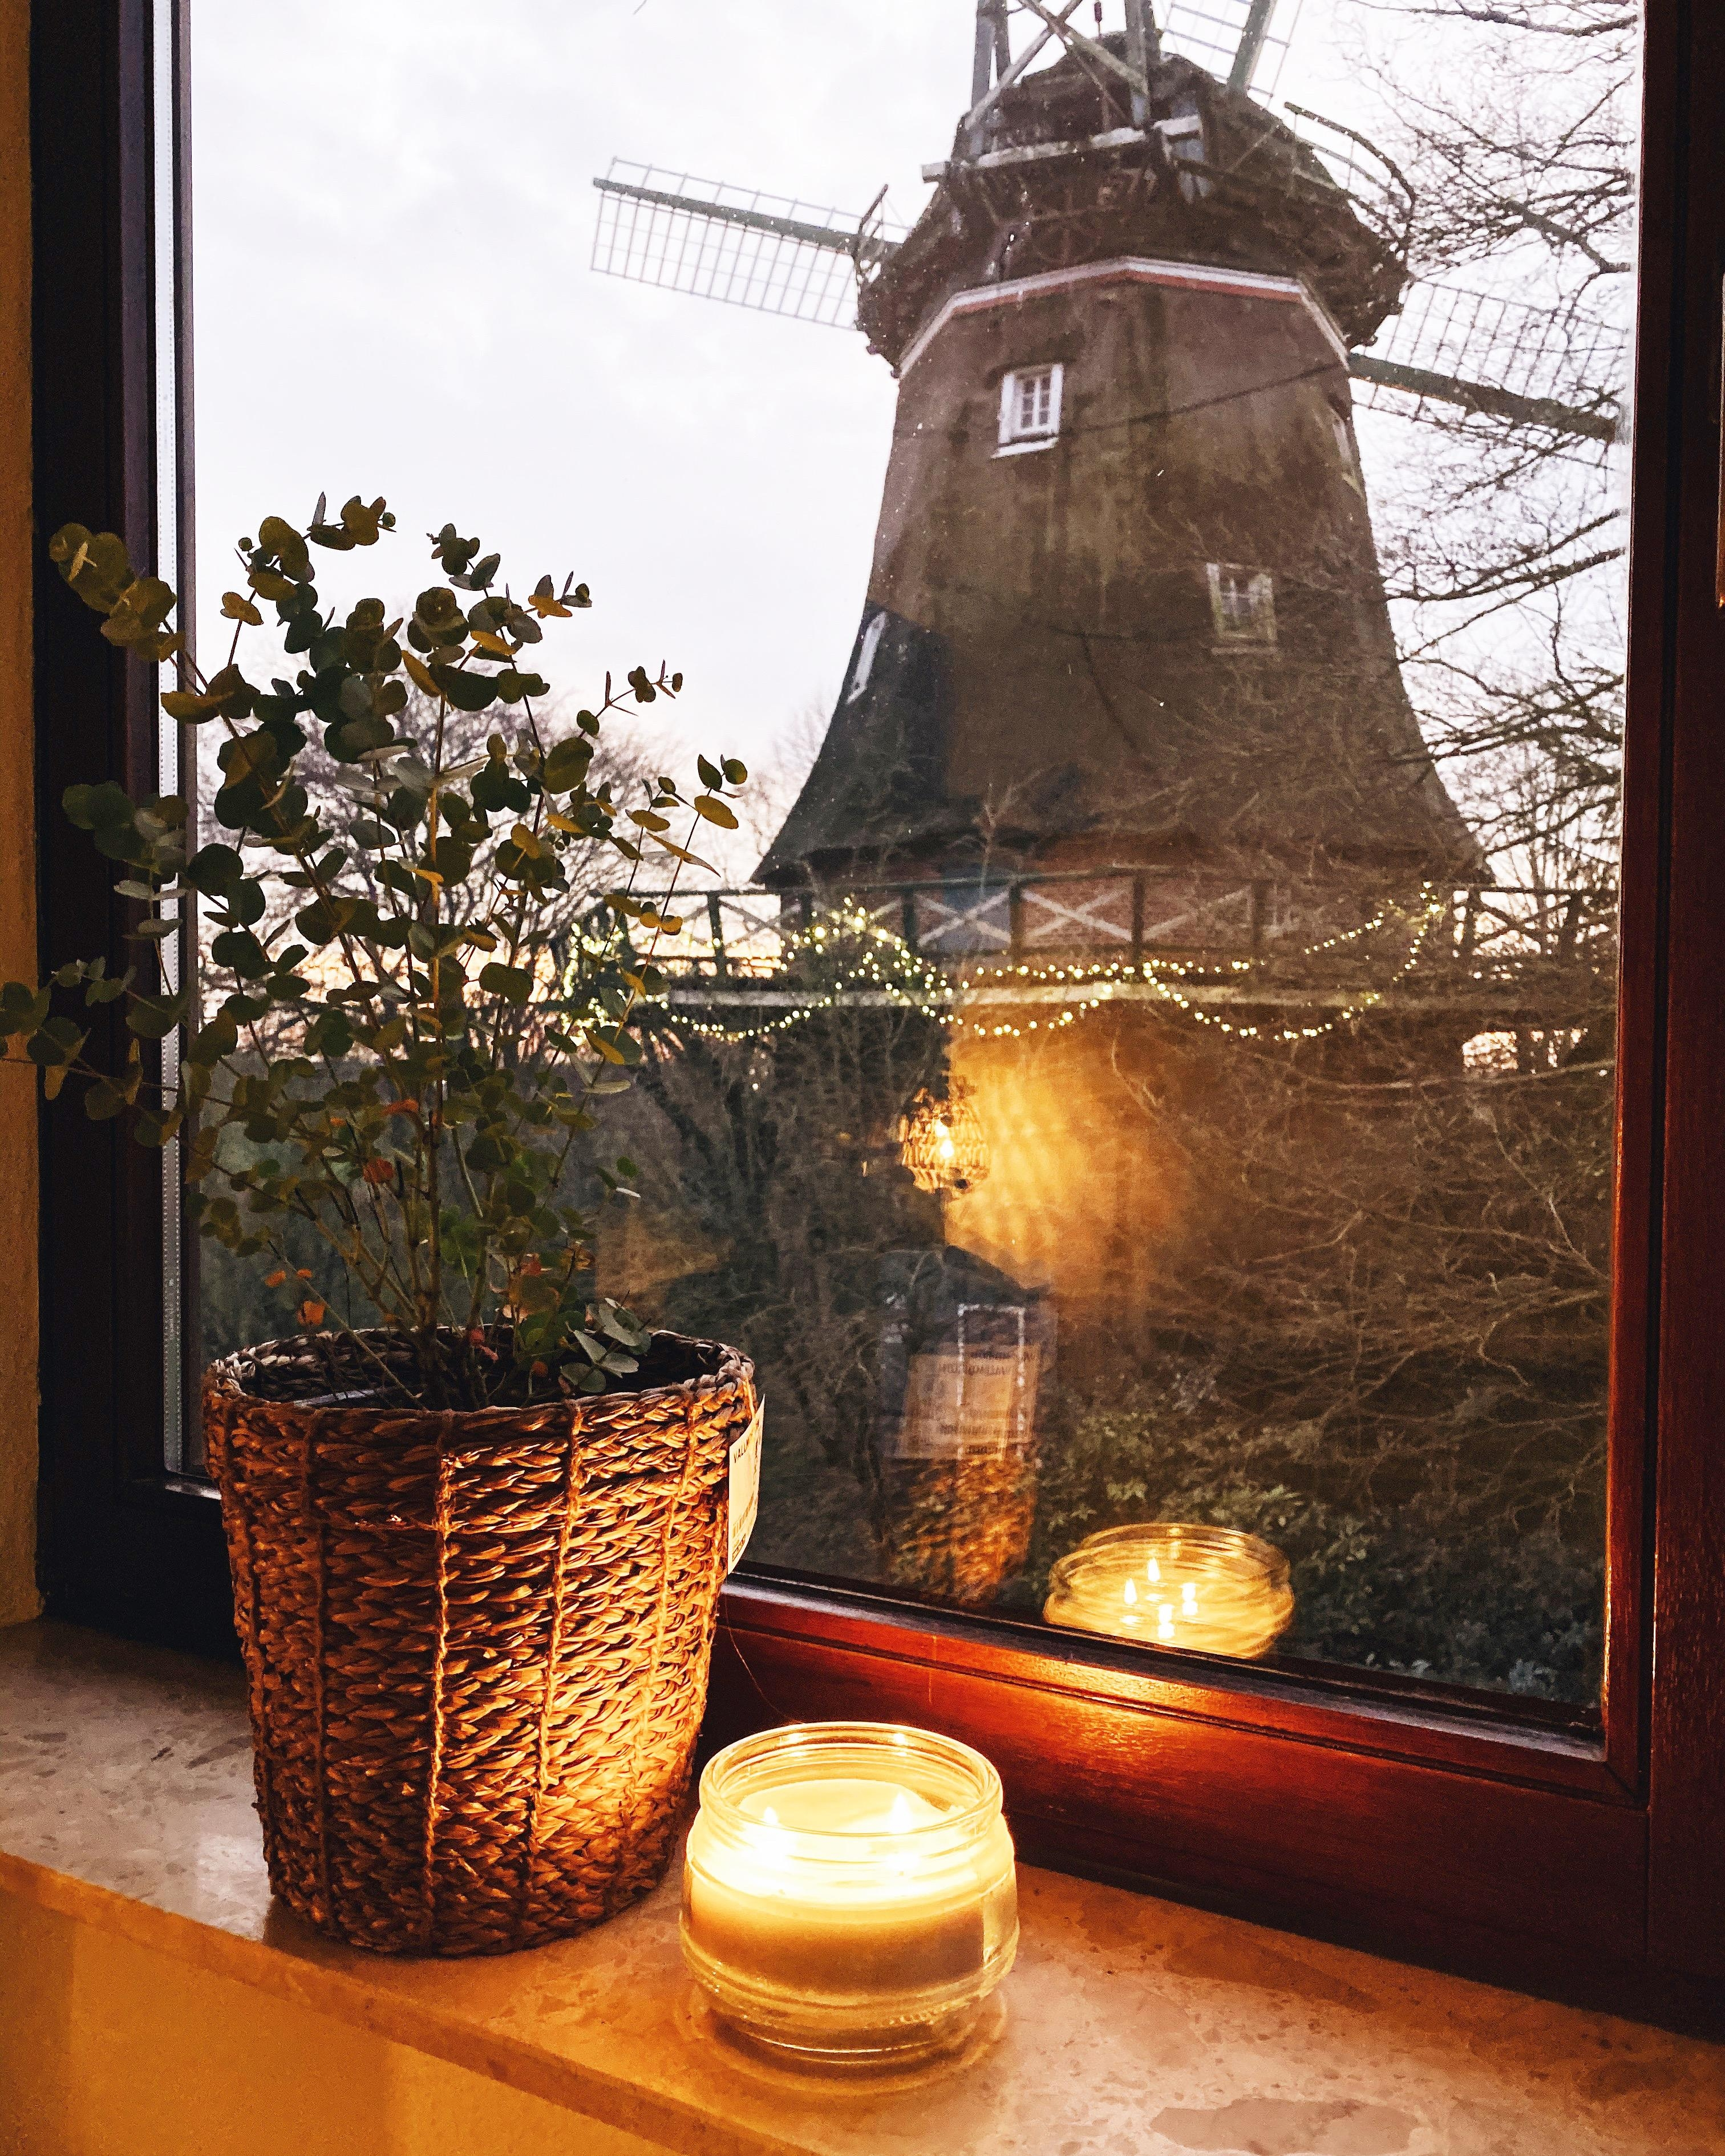 Cozy Christmas time next to the windmill ♡